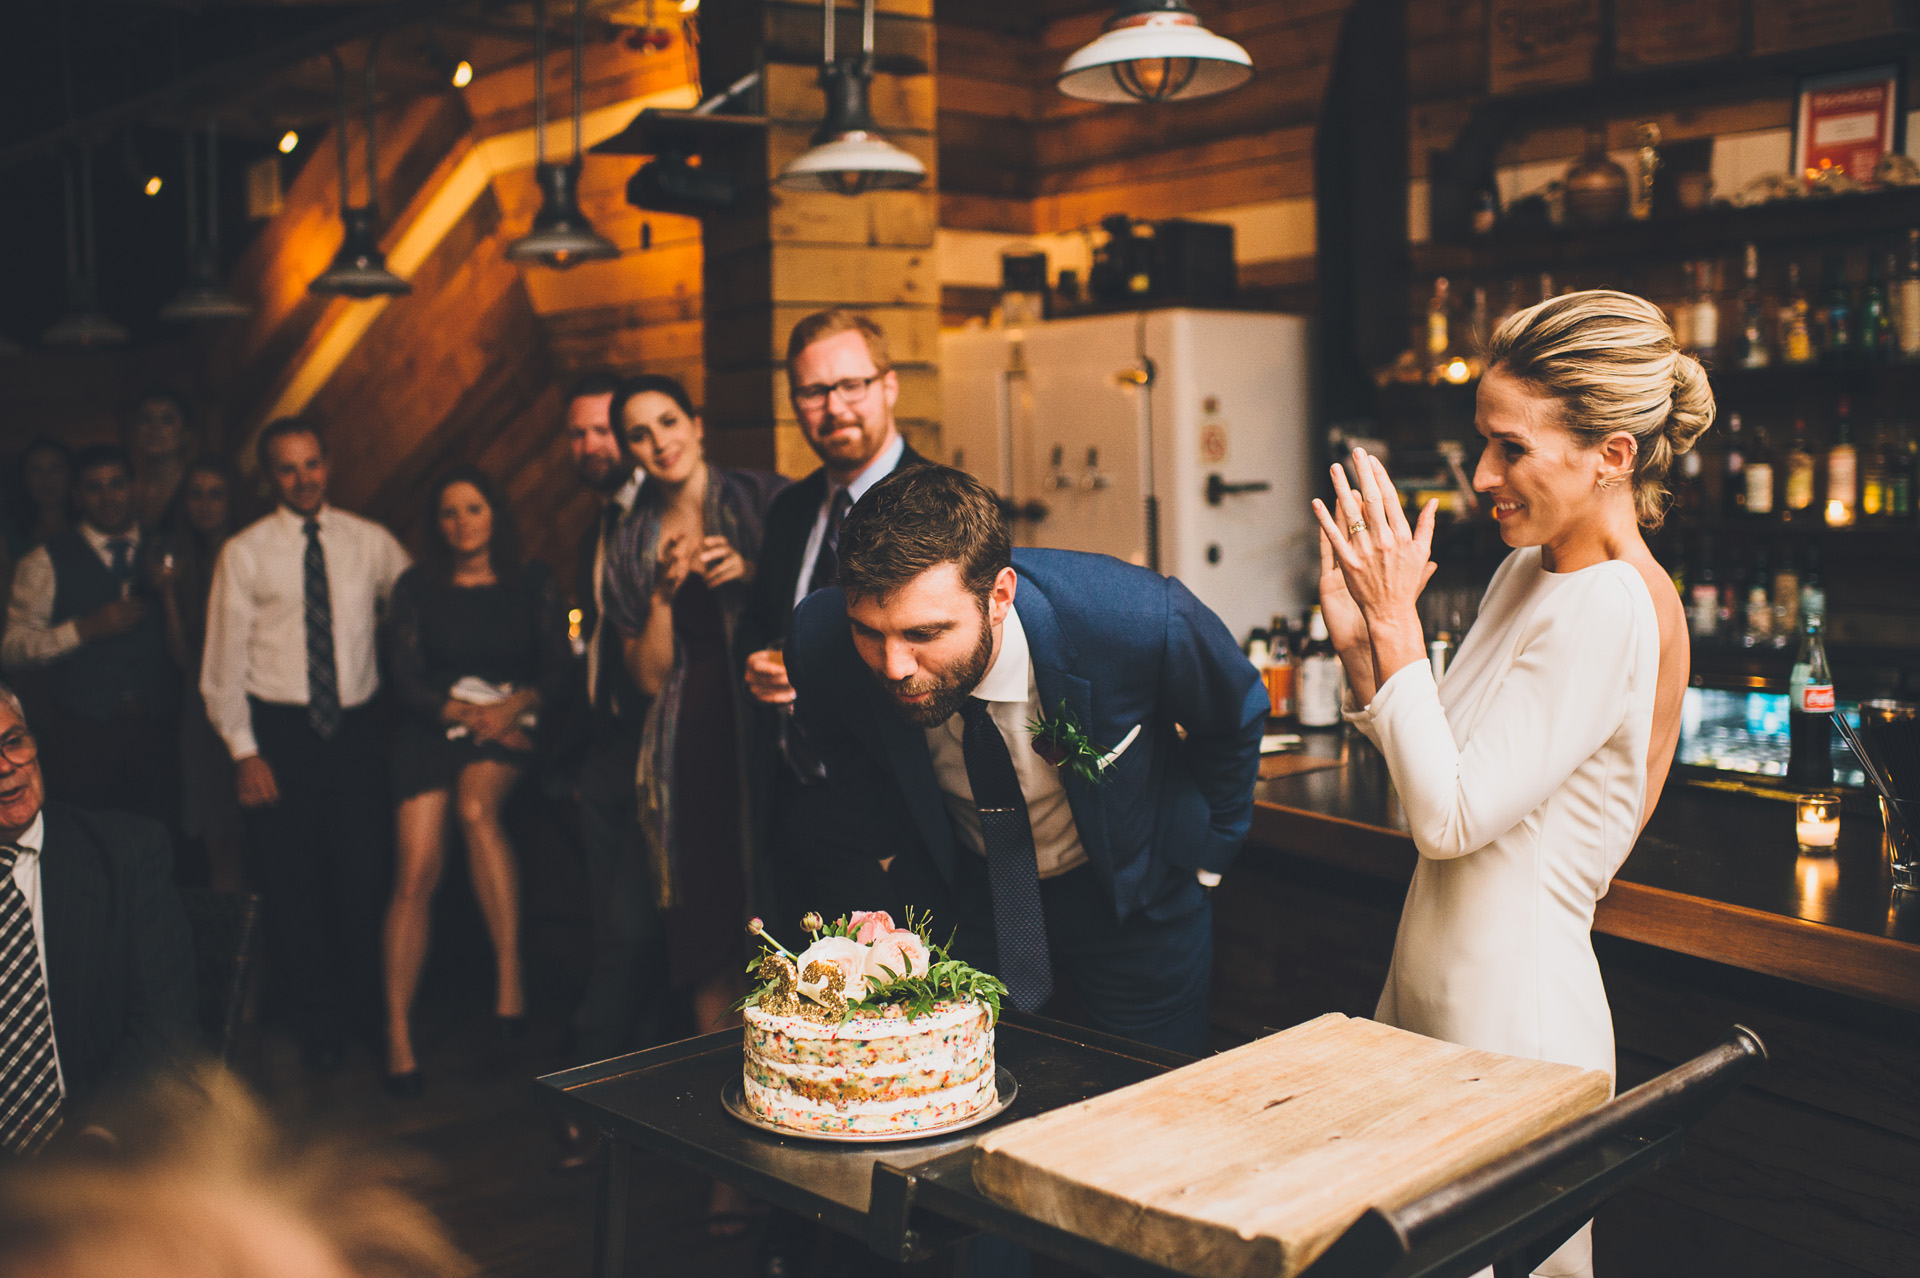 la-brasa-somerville-wedding-415